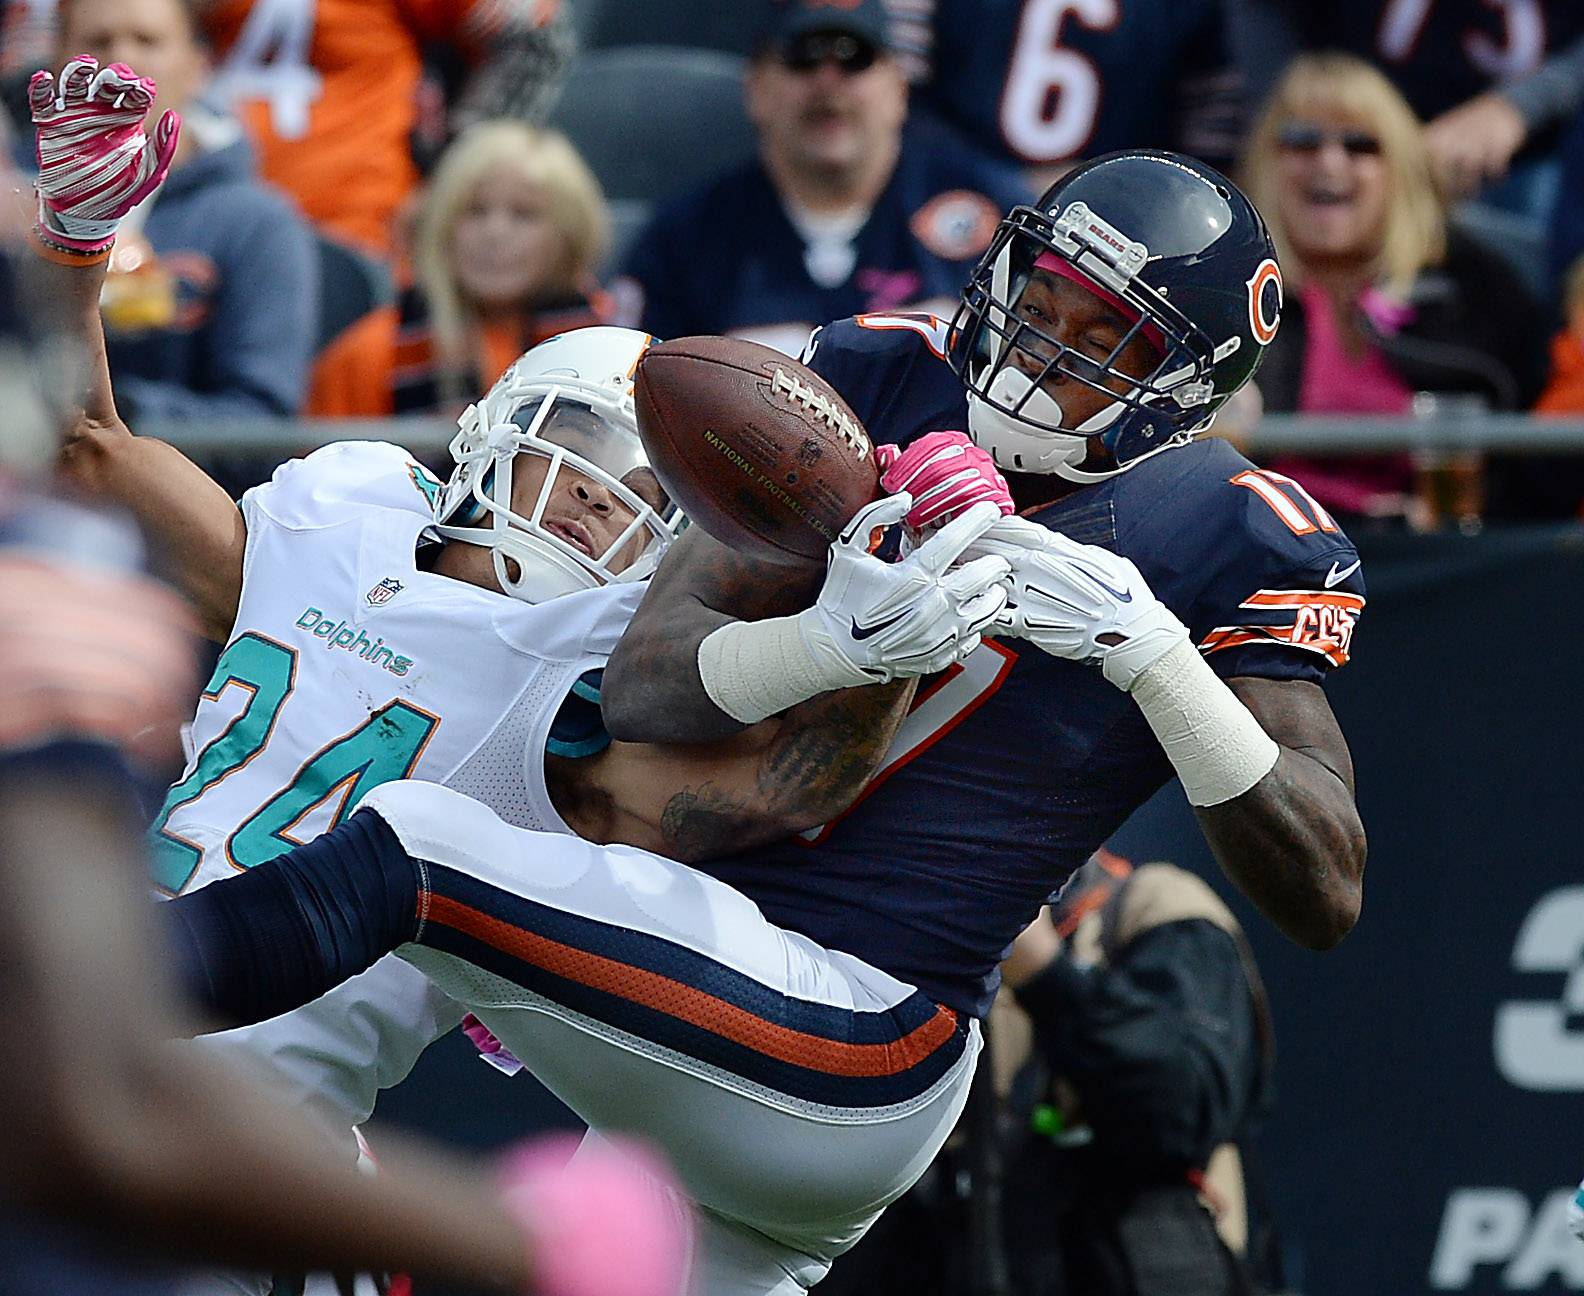 Alshon Jeffery fails to pull in a pass play from Jay Cutler as Miami's Cortland Finnegan breaks up the play in the second quarter Sunday at Soldier Field.